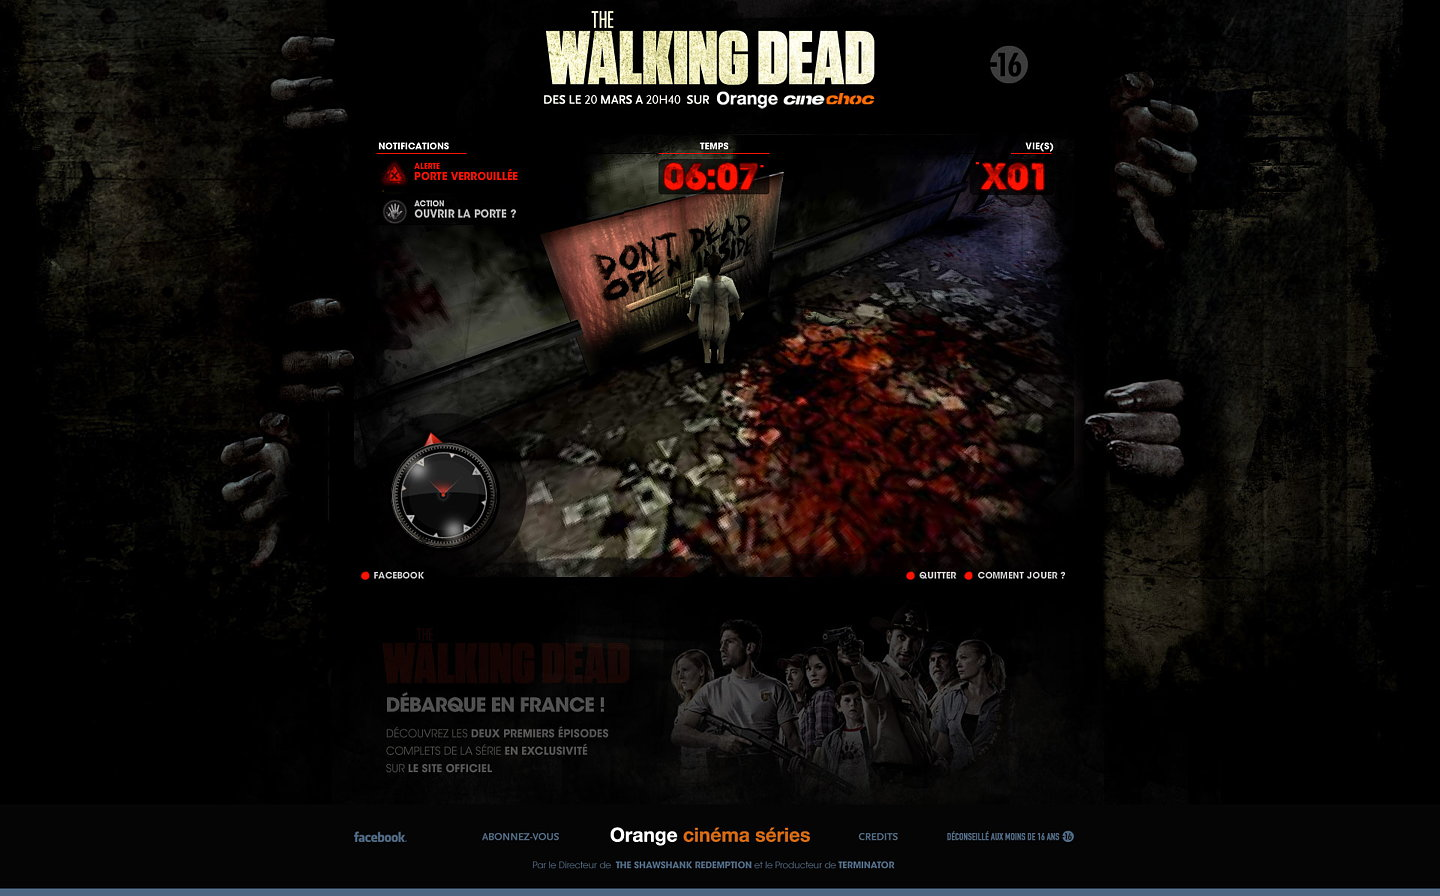 walking dead website